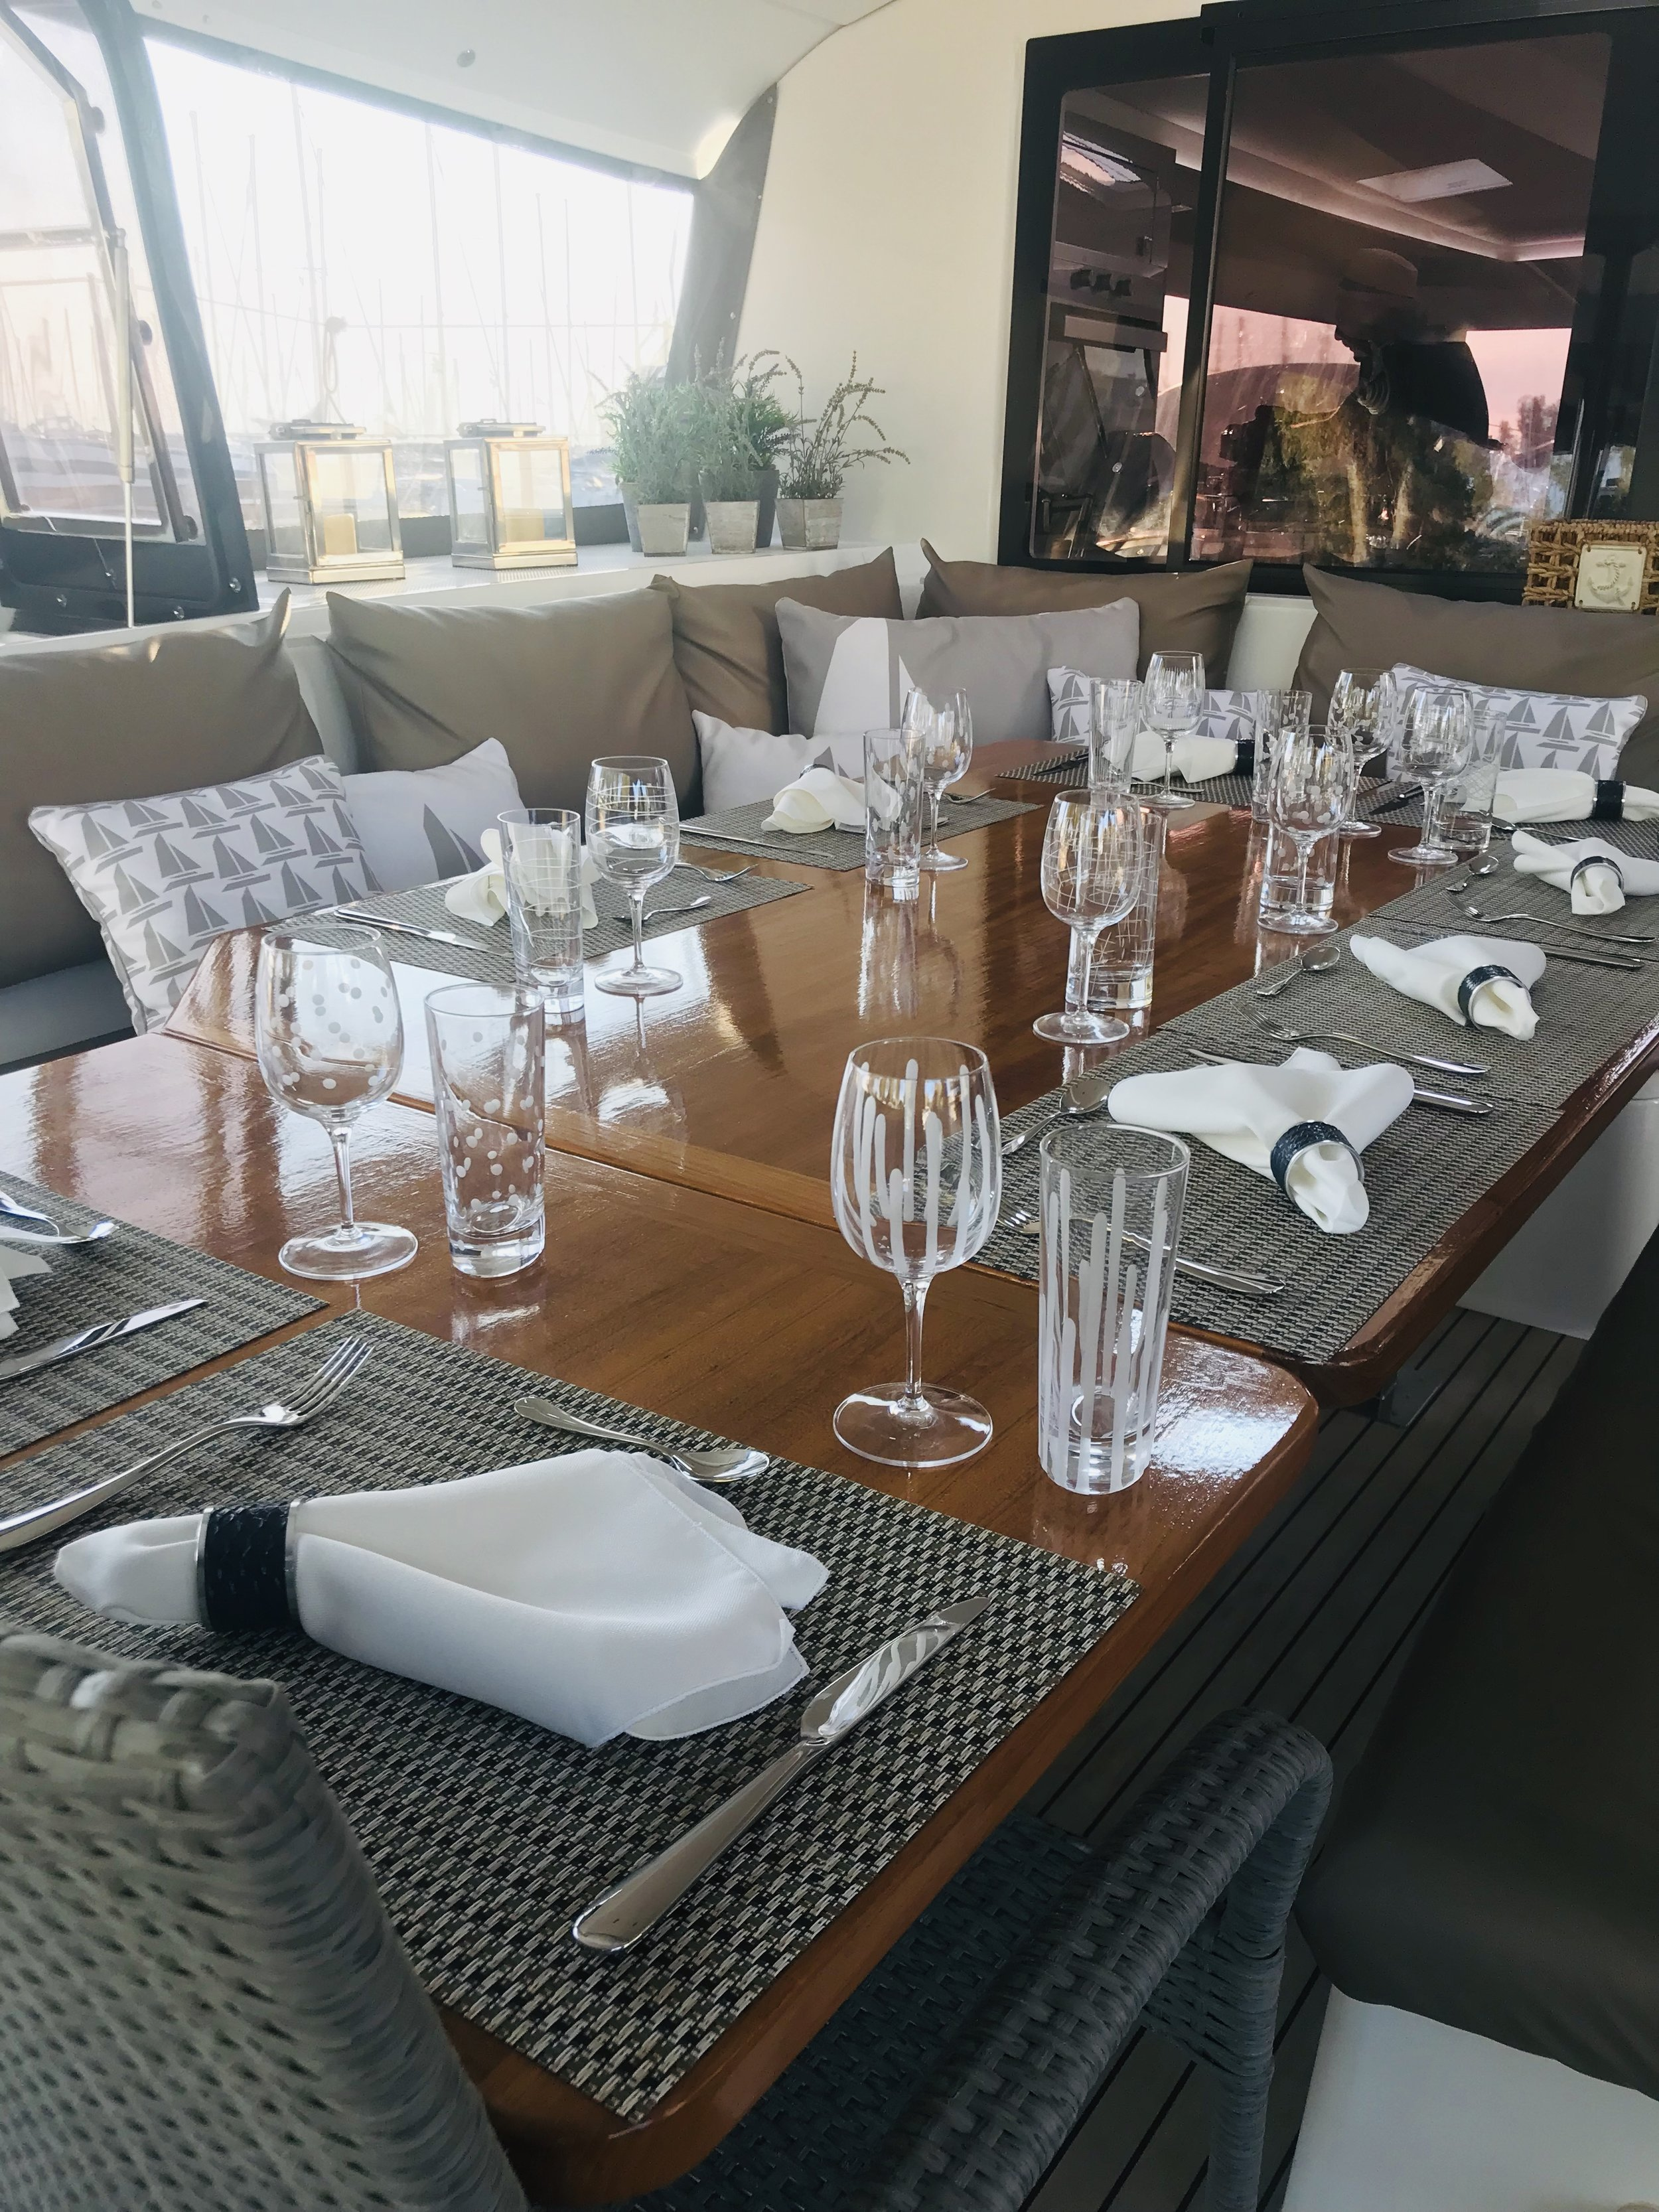 Dining Table for 12people